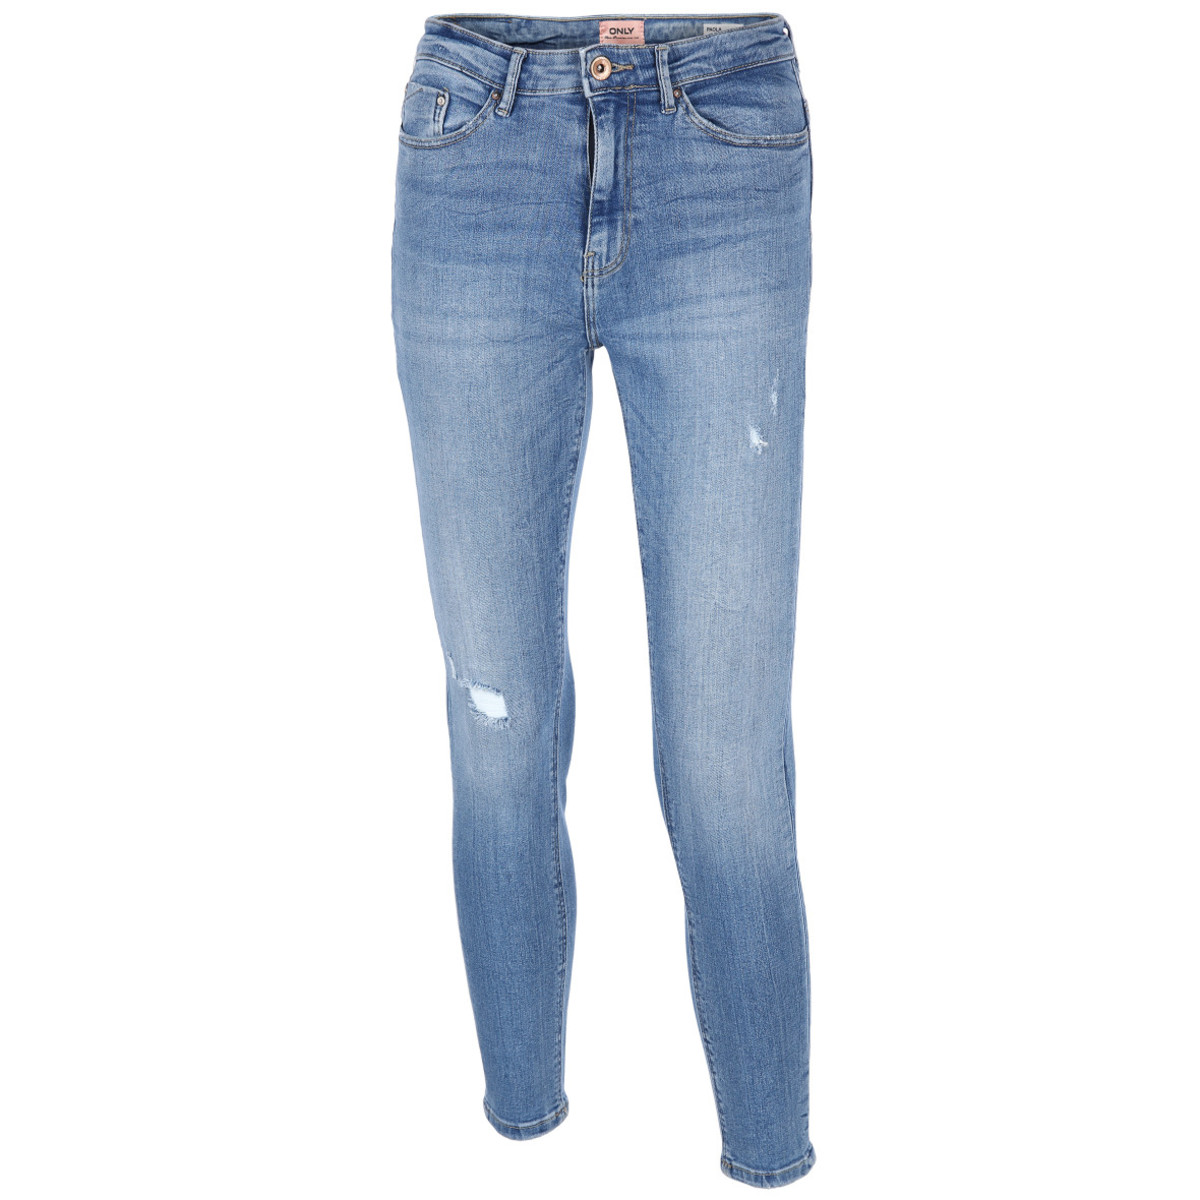 Bild 1 von Damen Only Jeans PAOLA High Waisted